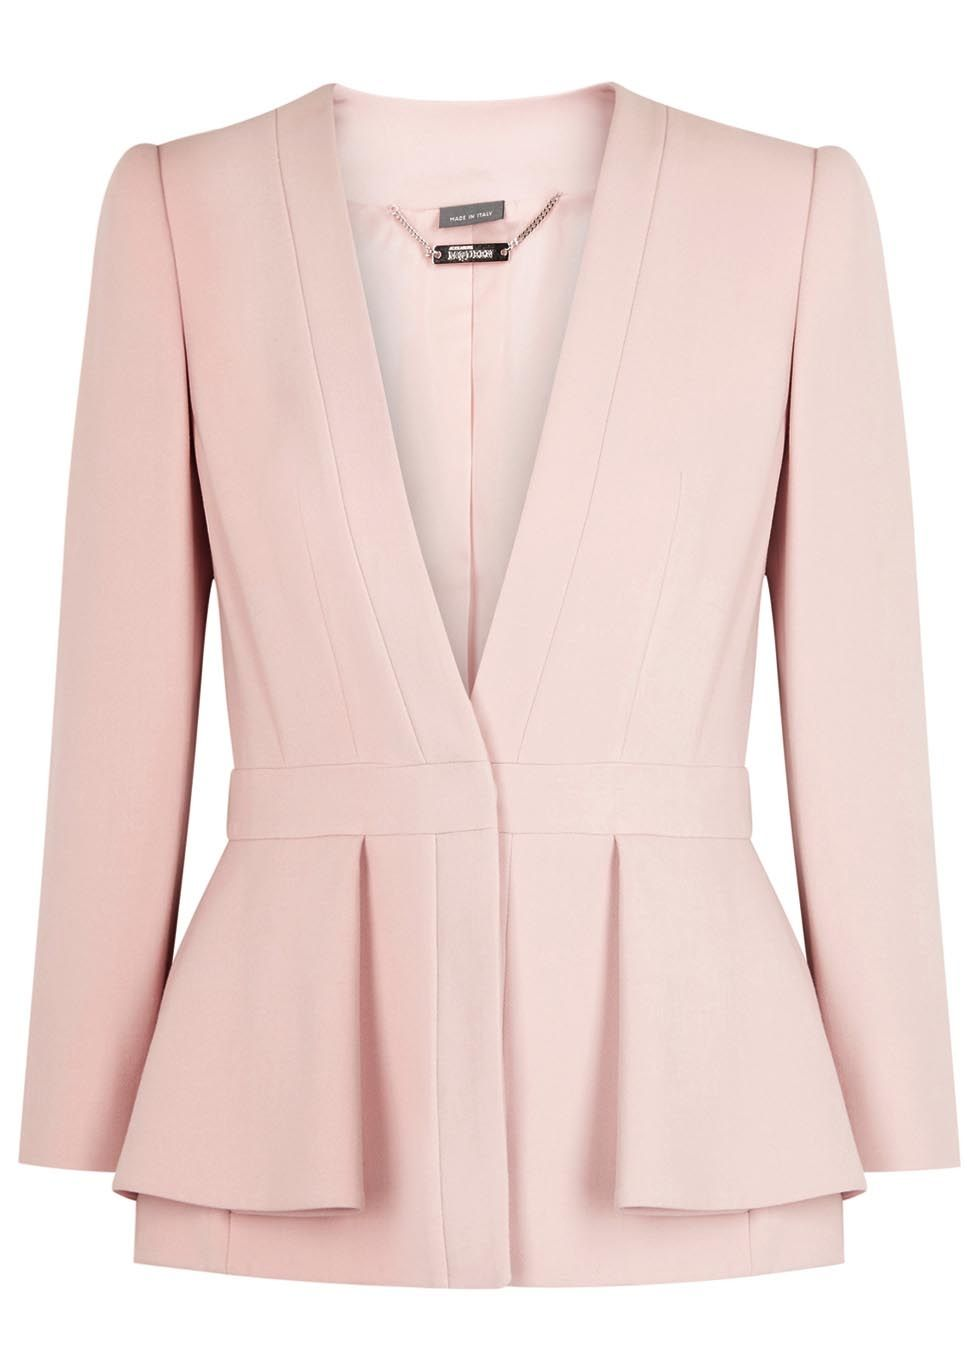 Alexander McQueen soft pink crepe jacket Padded shoulders, overlay peplumat sides, fully lined Concealed button fastenings through front 57% viscose, 39% wool, 4% elastane; trim: 100% silk; lining: 100% cupro